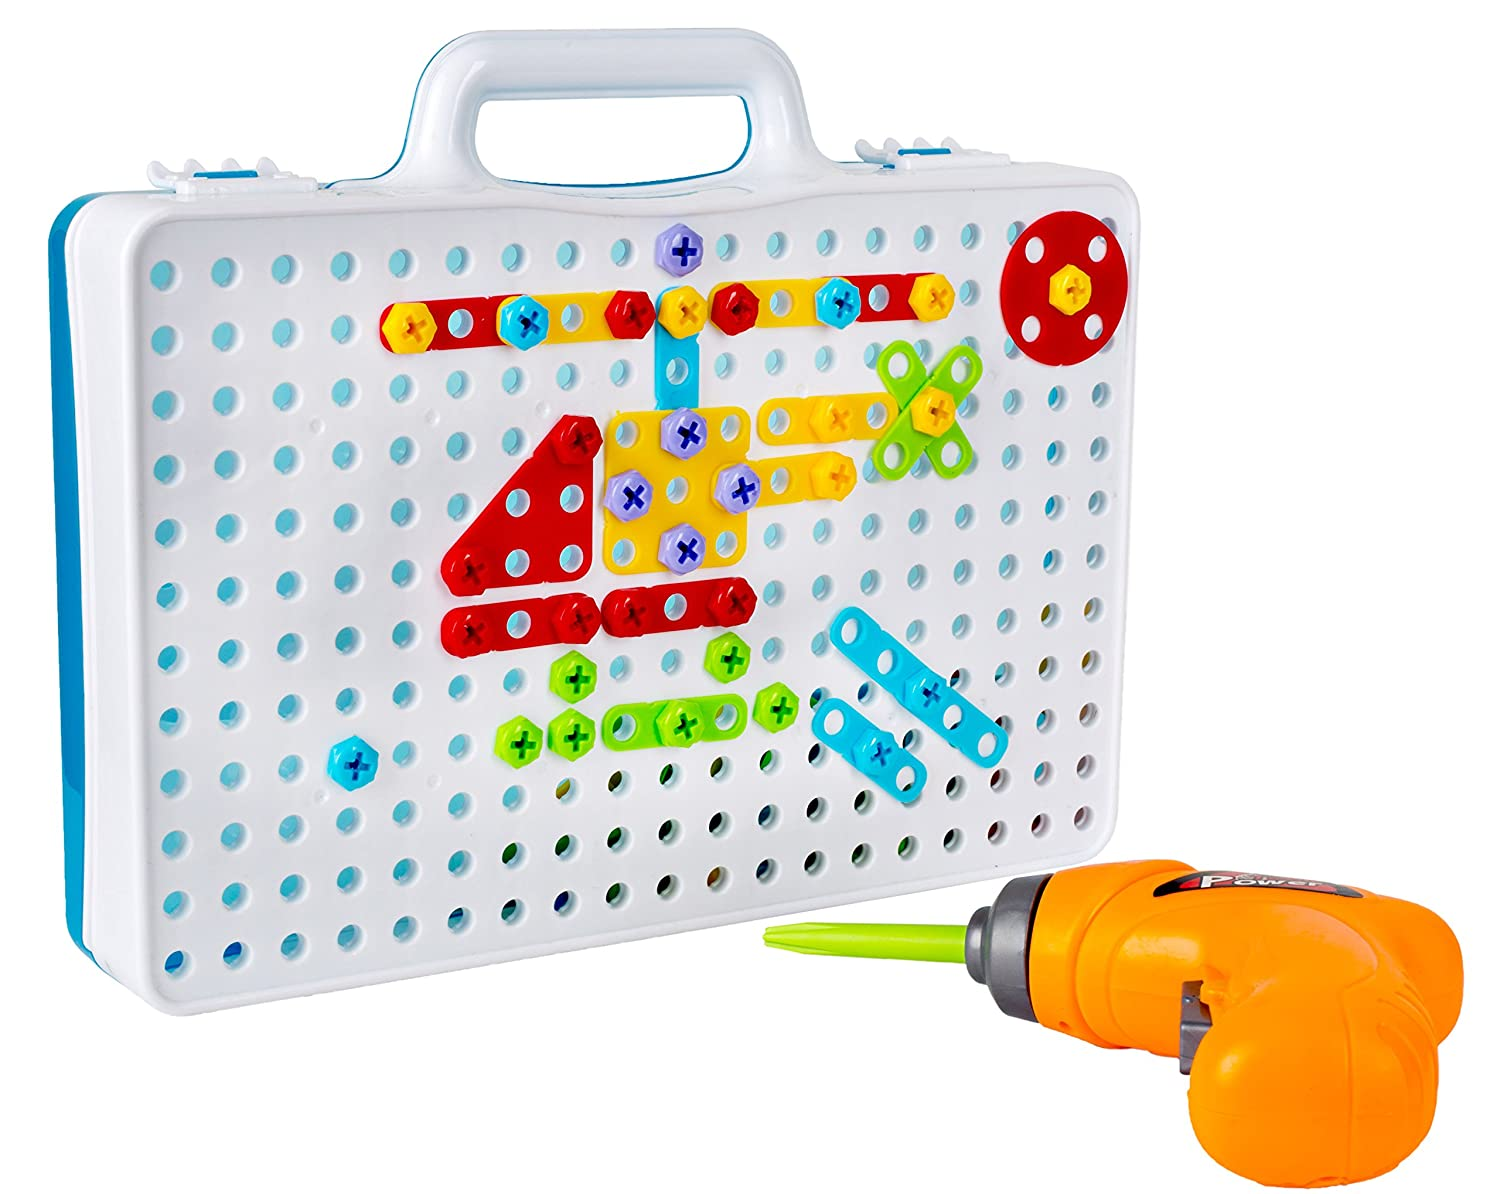 Drill Play Creative Educational Toy With Real Toy Drill Mosaic Design Building Toys Tool Kit